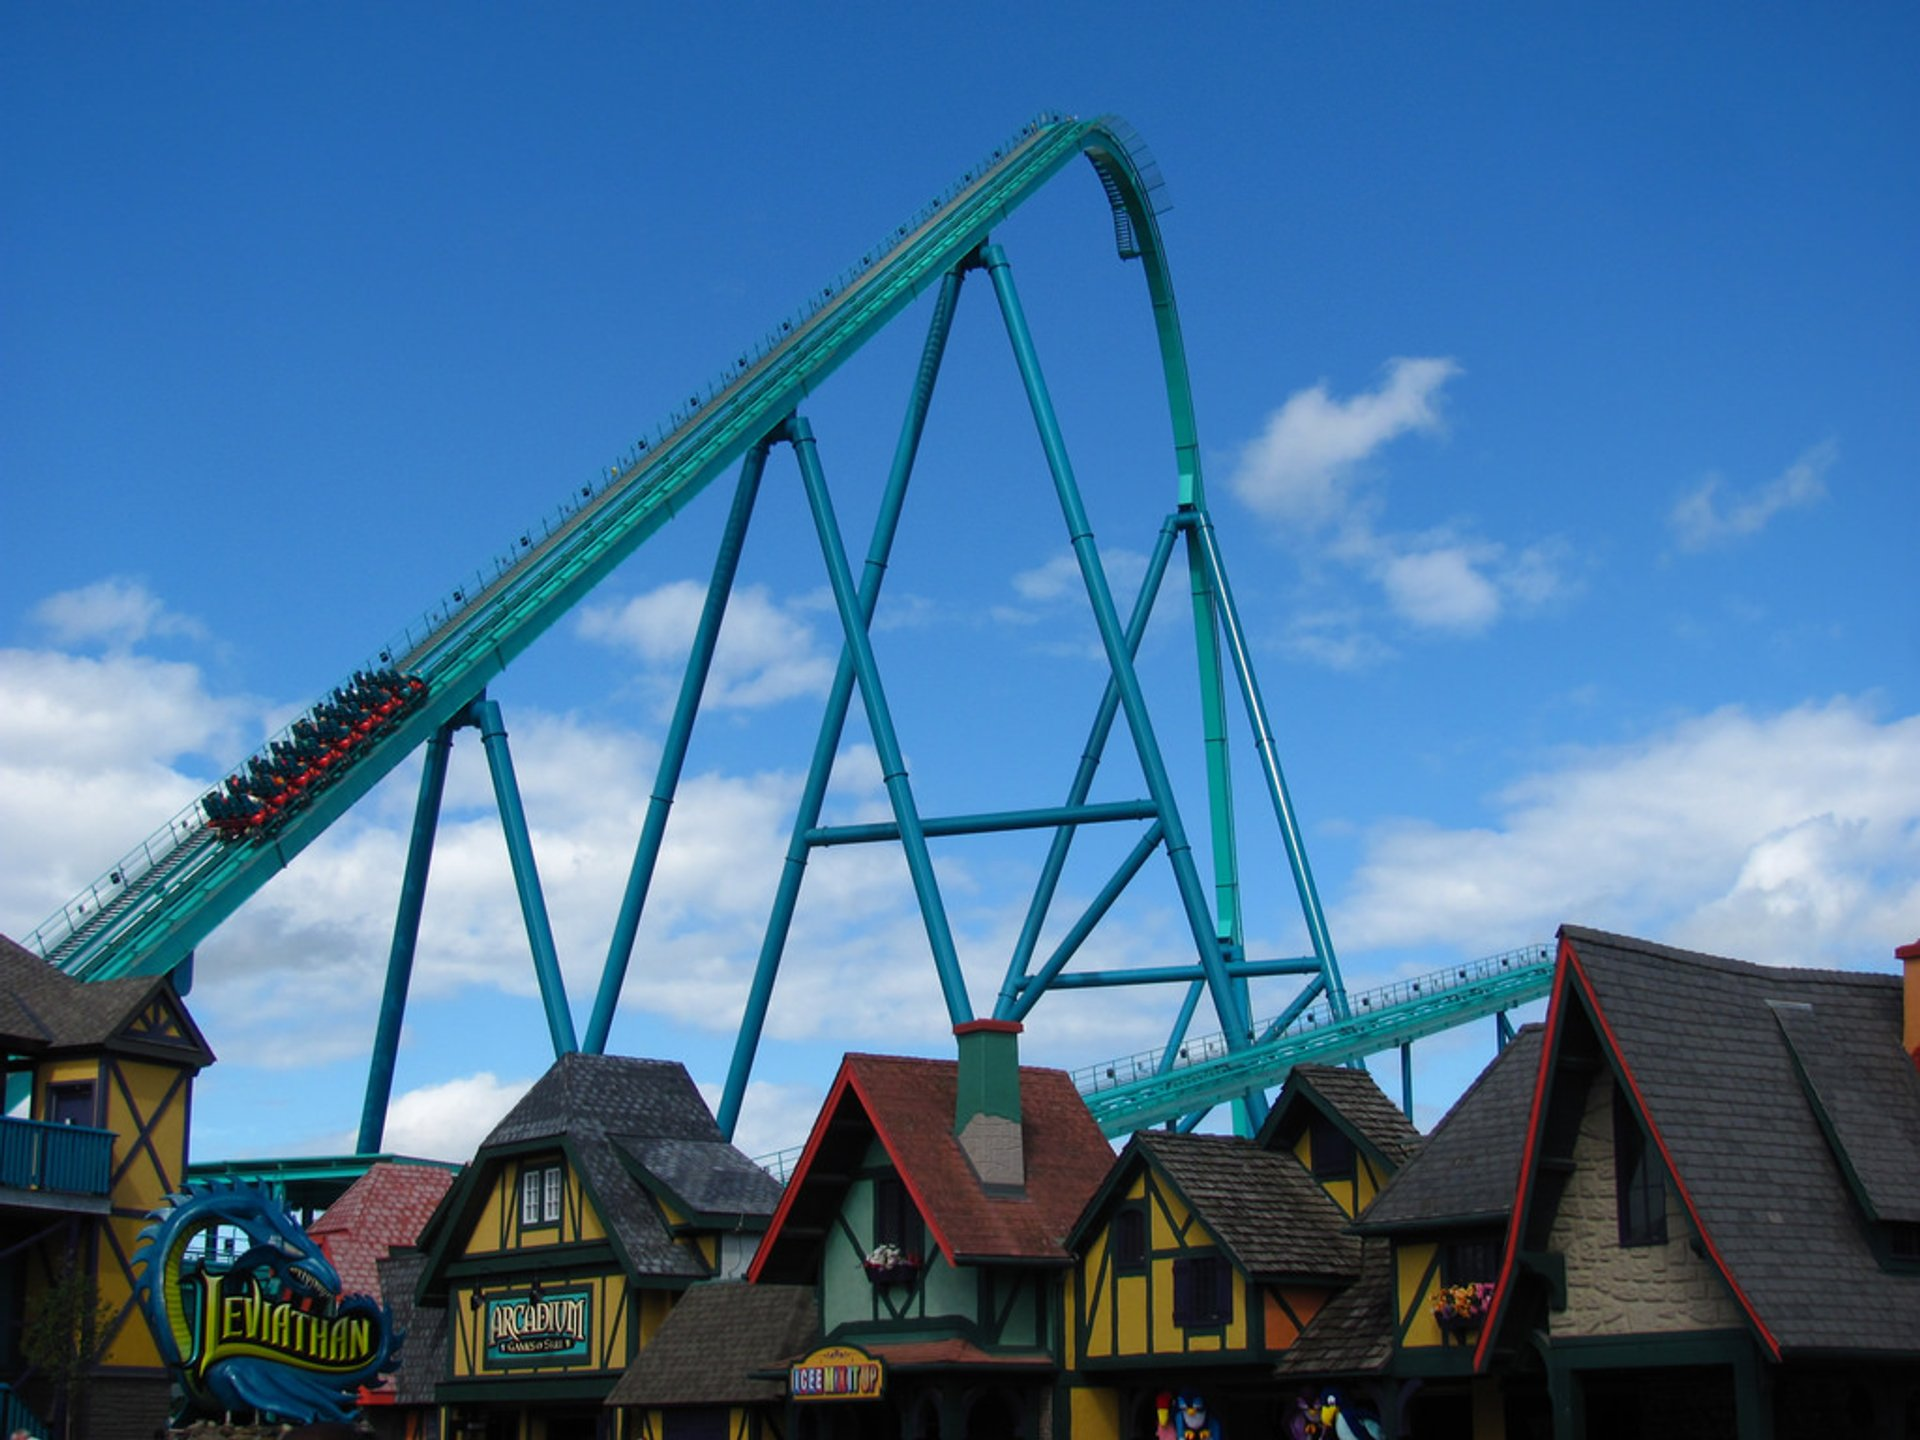 At 306 feet tall, Leviathan is kinda hard to miss.